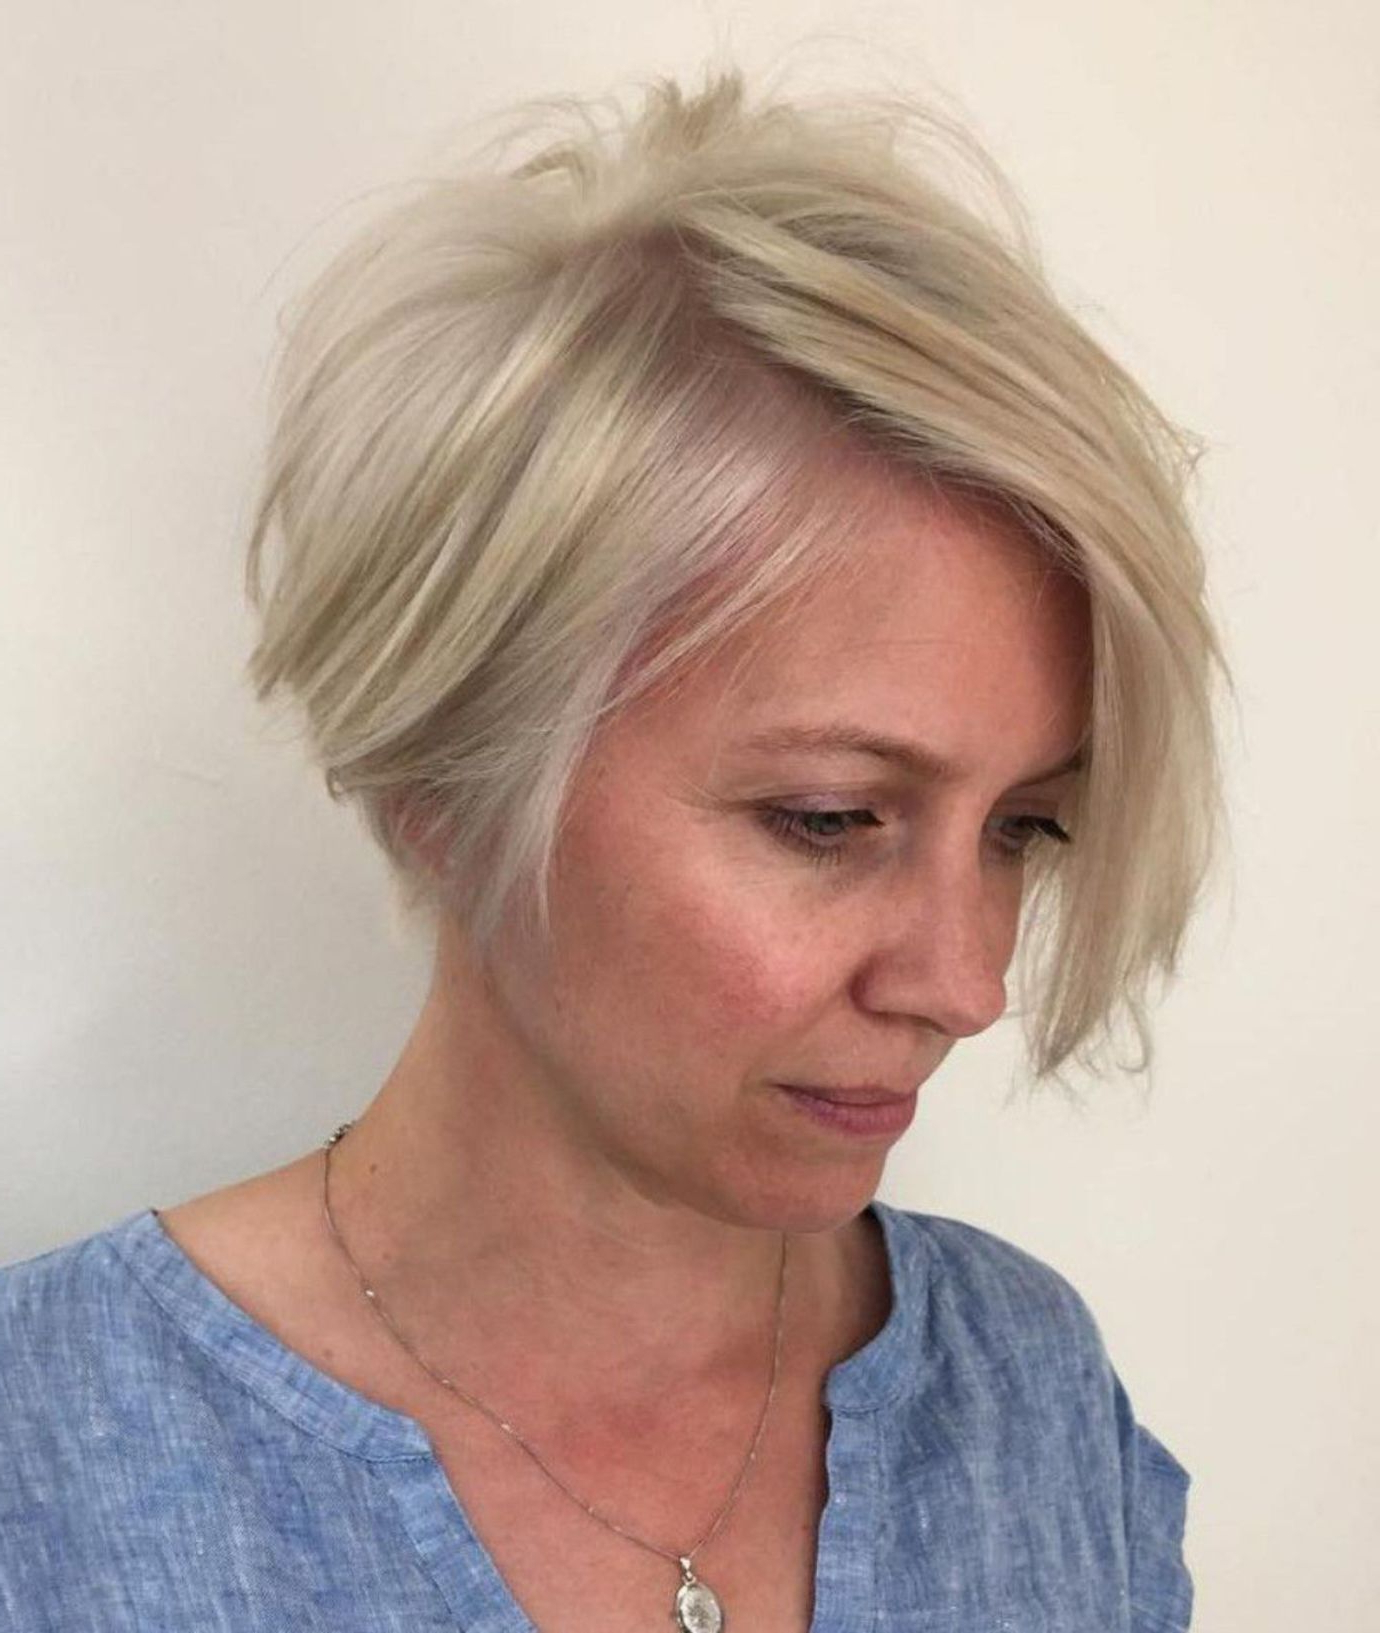 80 Best Modern Hairstyles And Haircuts For Women Over 50 Within Minimalist Pixie Bob Haircuts (View 7 of 20)